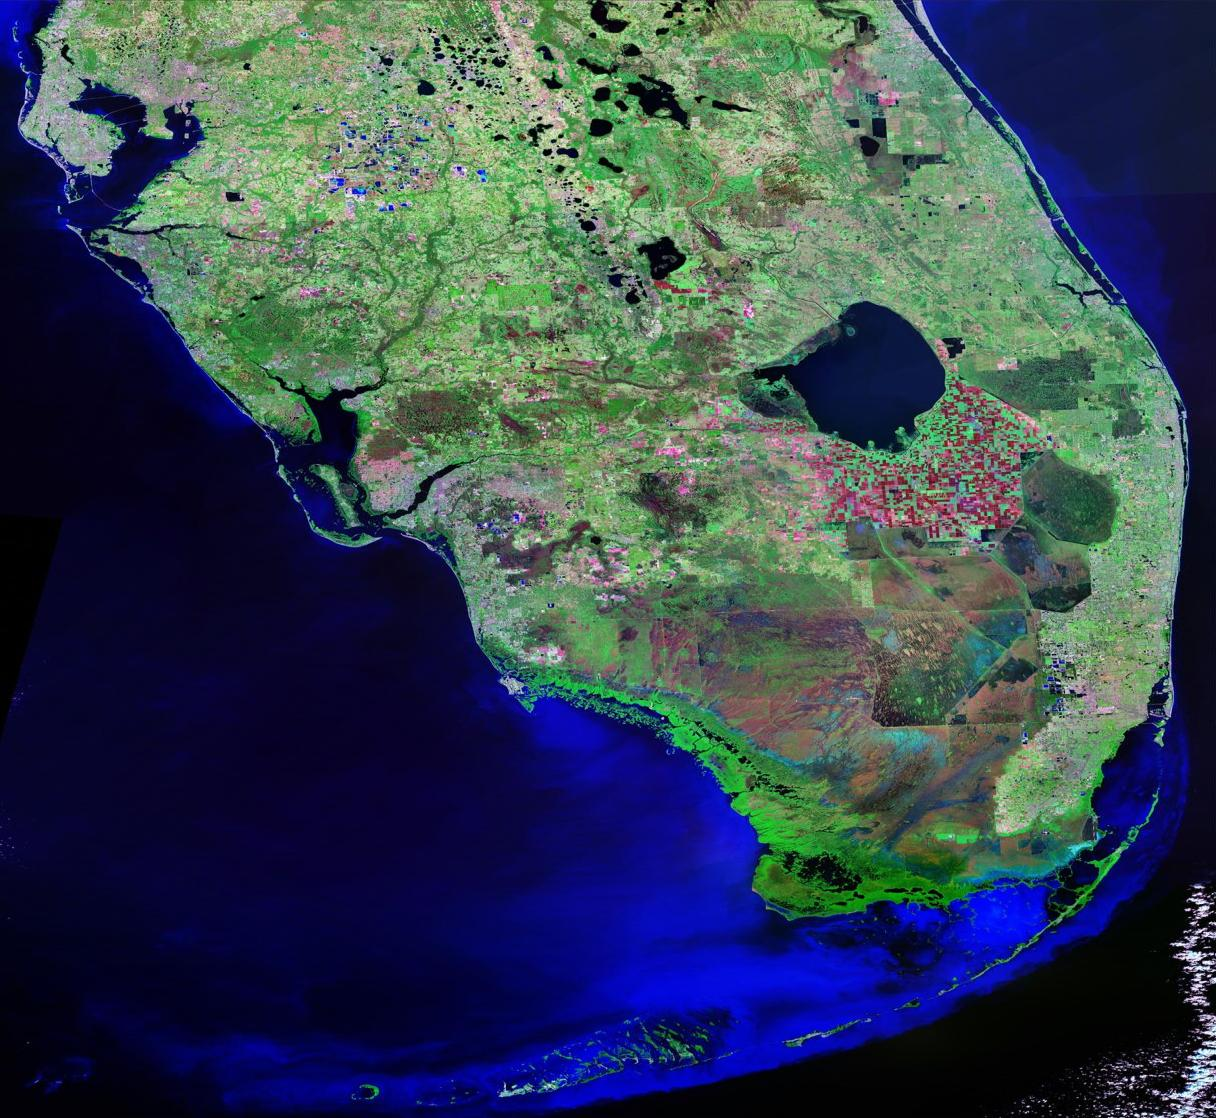 Everglades Restoration Restore natural hydrologic conditions in the remaining 50% of historic Everglades Water quantity, quality, timing and distribution Maintain or enhance existing services in